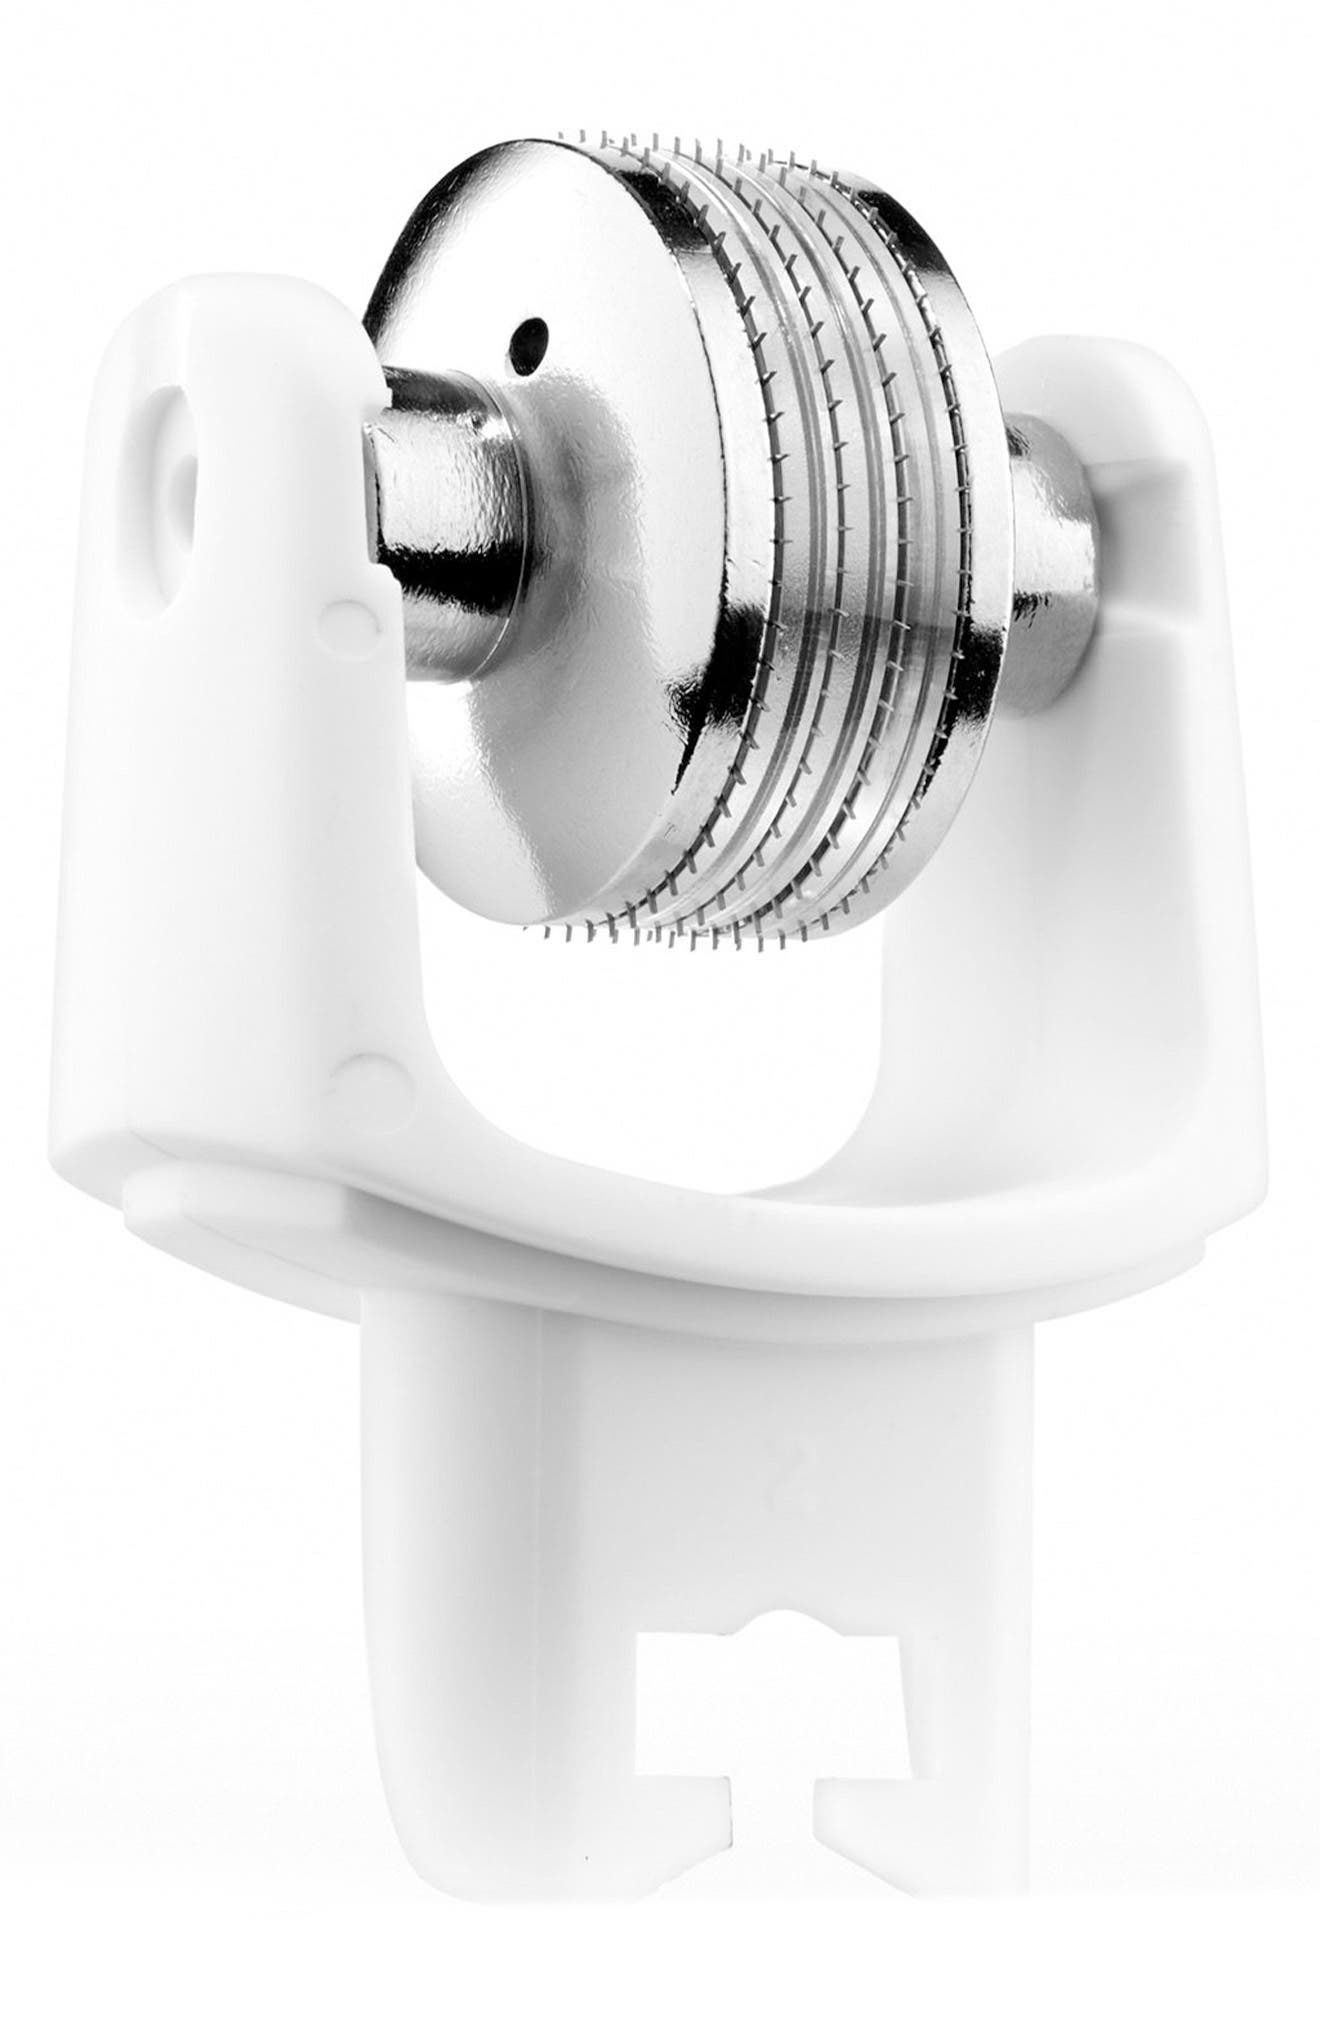 GloPRO<sup>®</sup> EYE MicroTip<sup>™</sup> Attachment Replacement Head,                             Alternate thumbnail 2, color,                             No Color